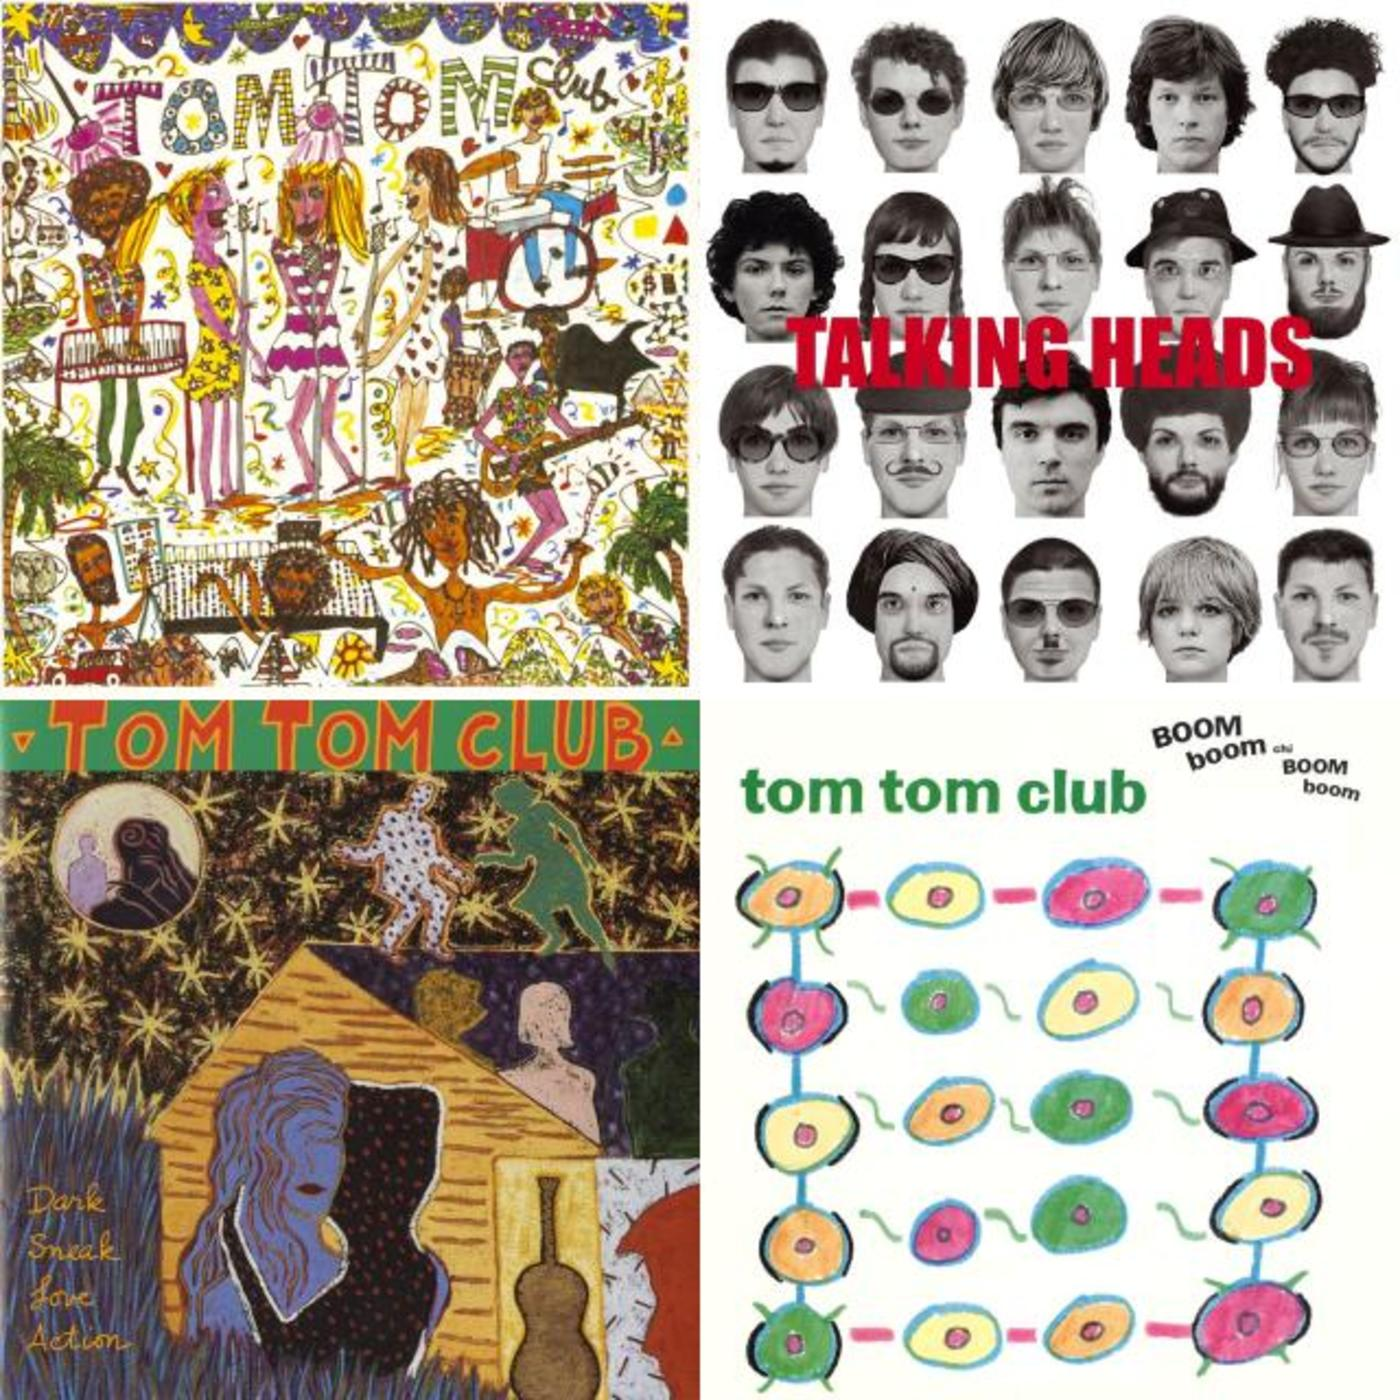 Happy Birthday Chris Frantz - Tom Tom Club